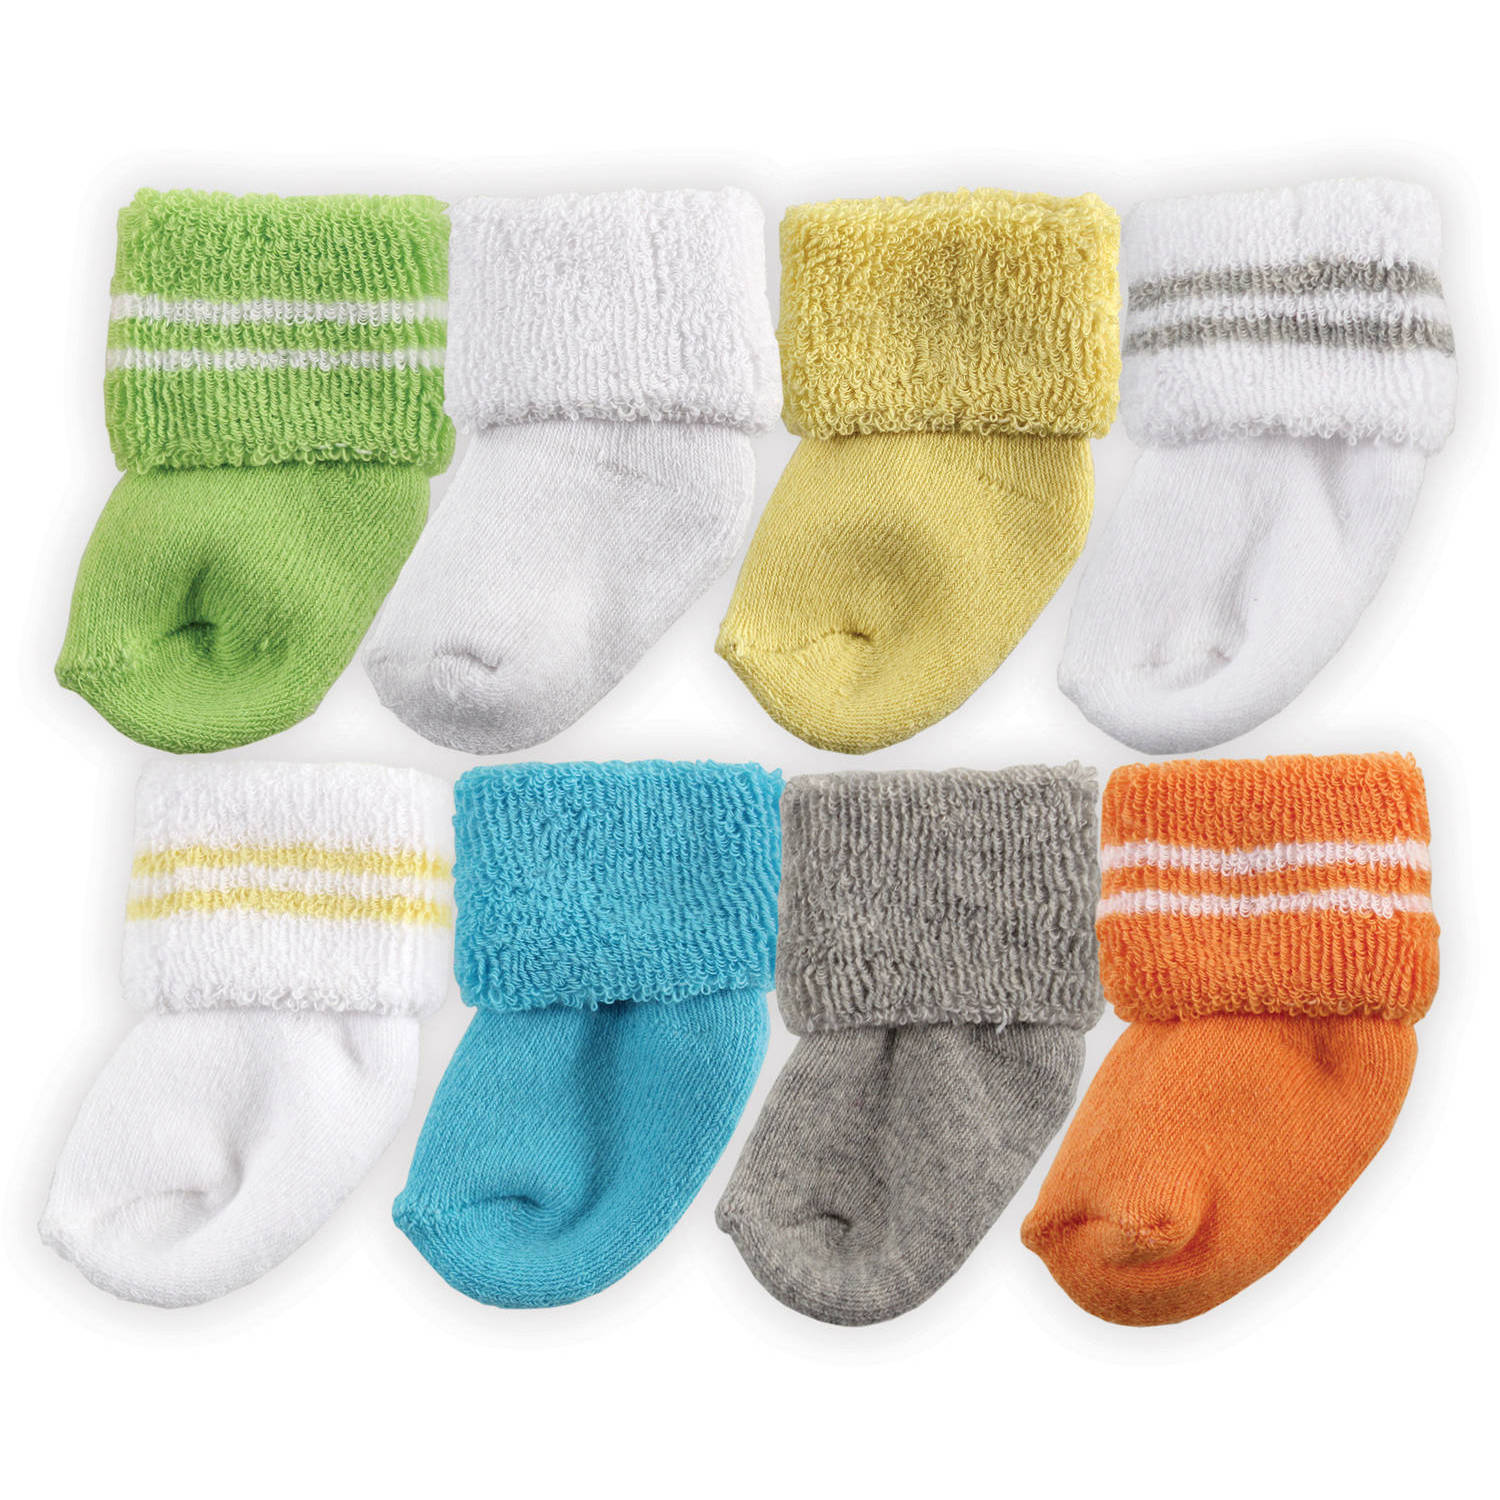 Luvable Friends Newborn Baby Neutral Socks 8-Pack